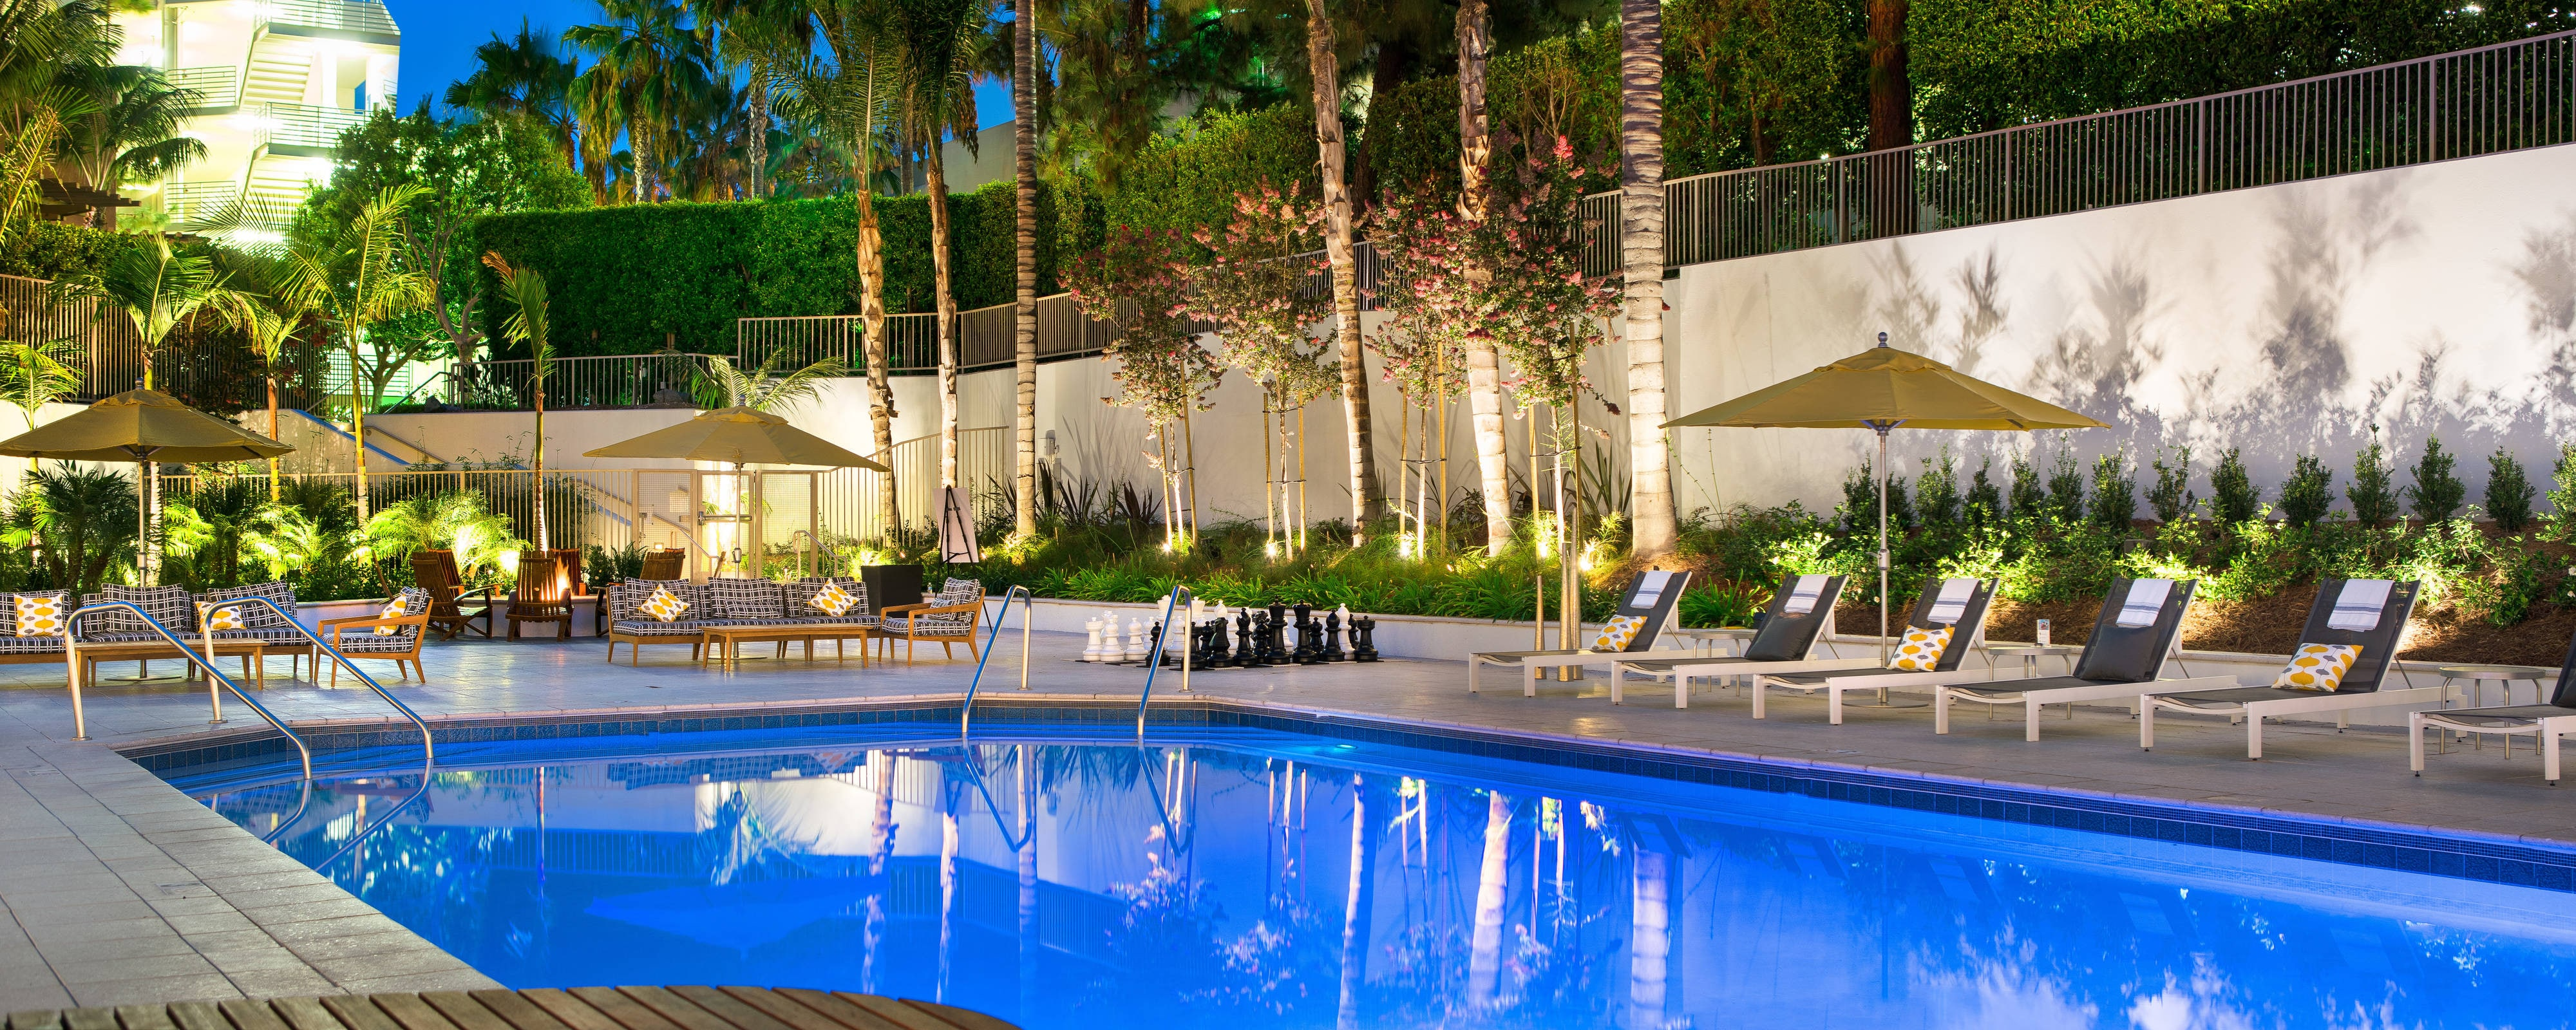 Irvine hotel with gym and pool irvine marriott - Menzies hotel irvine swimming pool ...